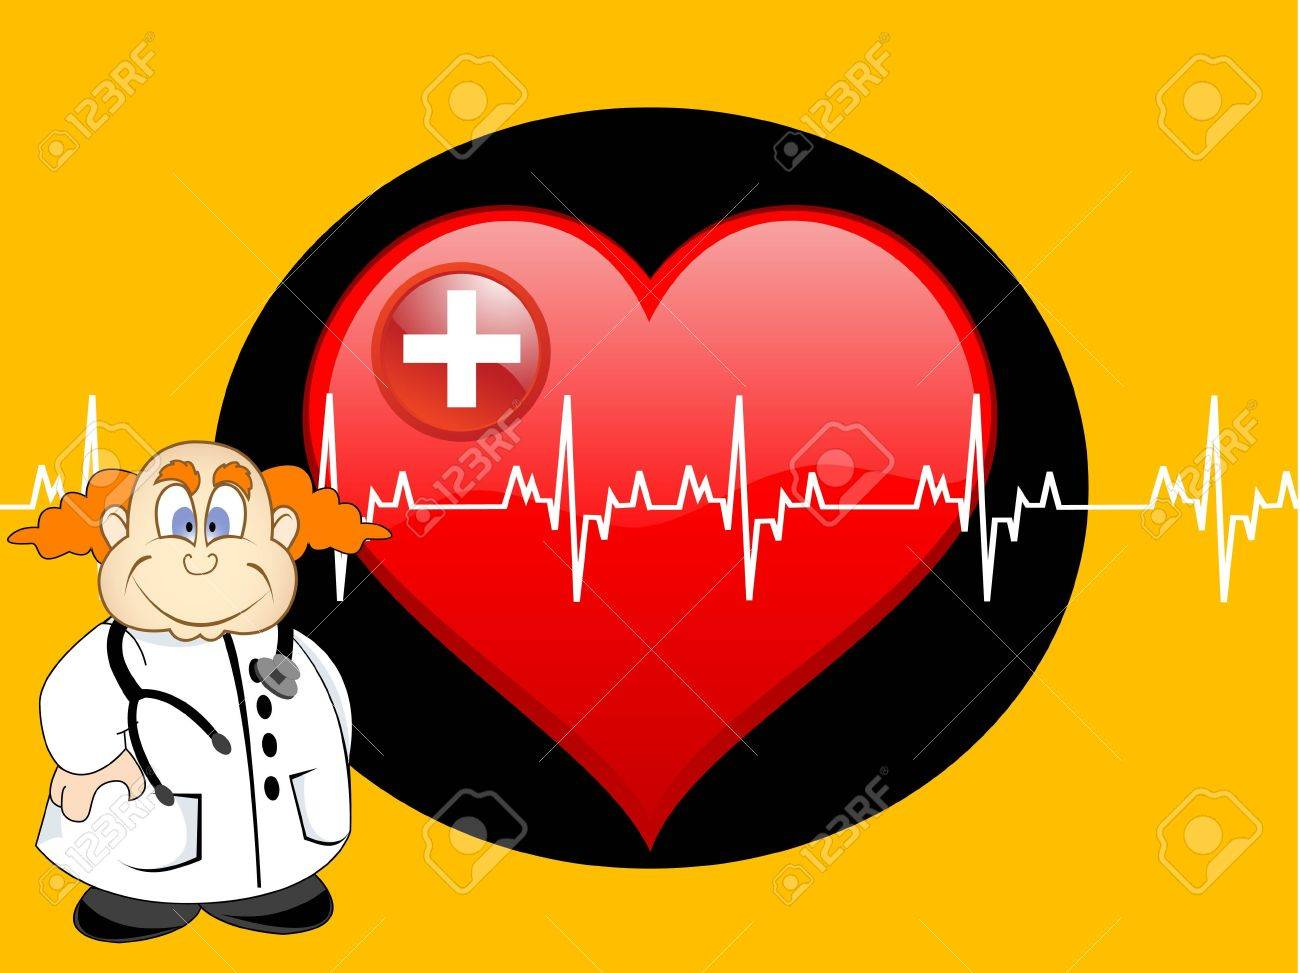 life saver on hearty background Stock Photo - 3300219